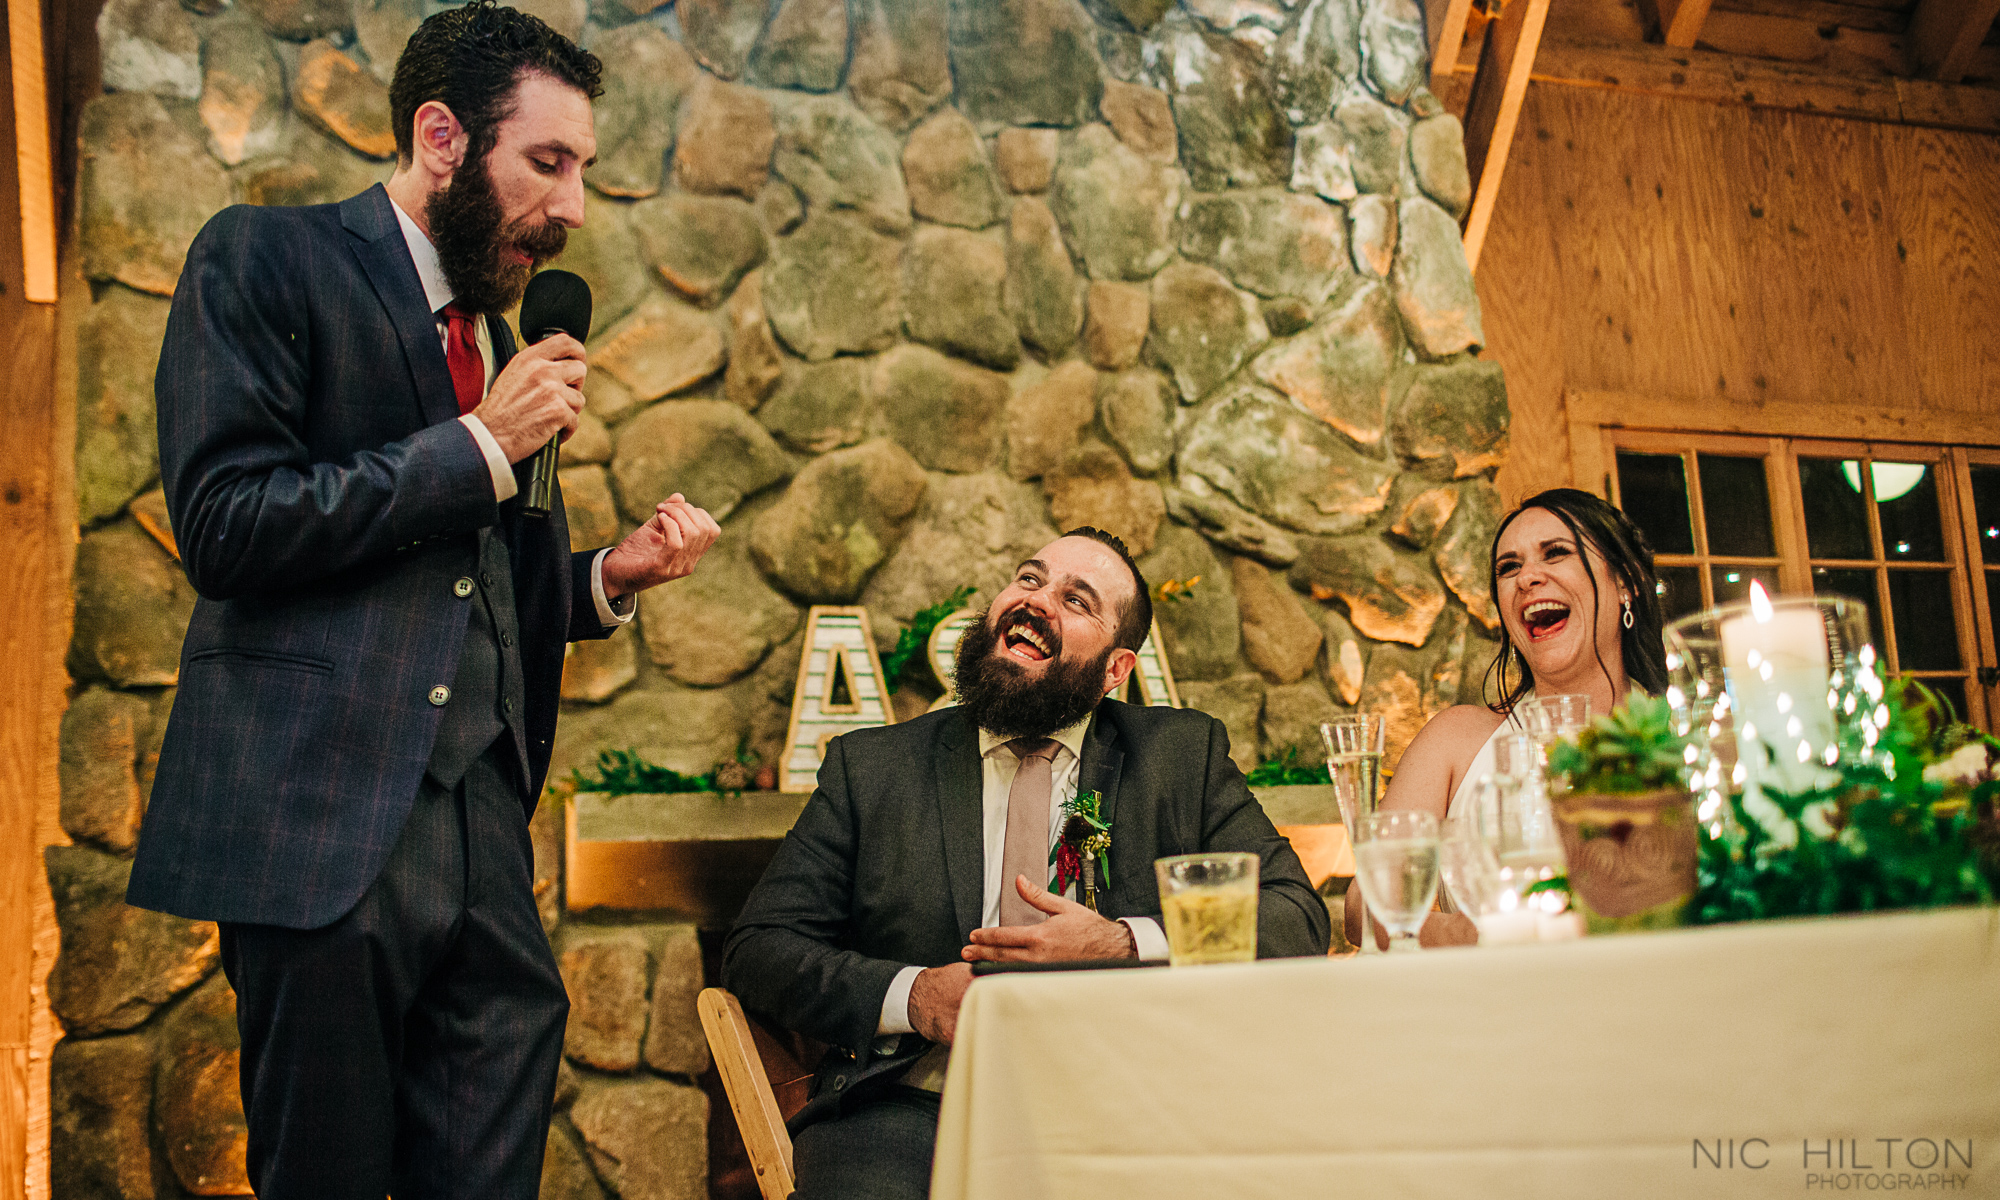 Camp-High-Sierra-Wedding-Toast.jpg